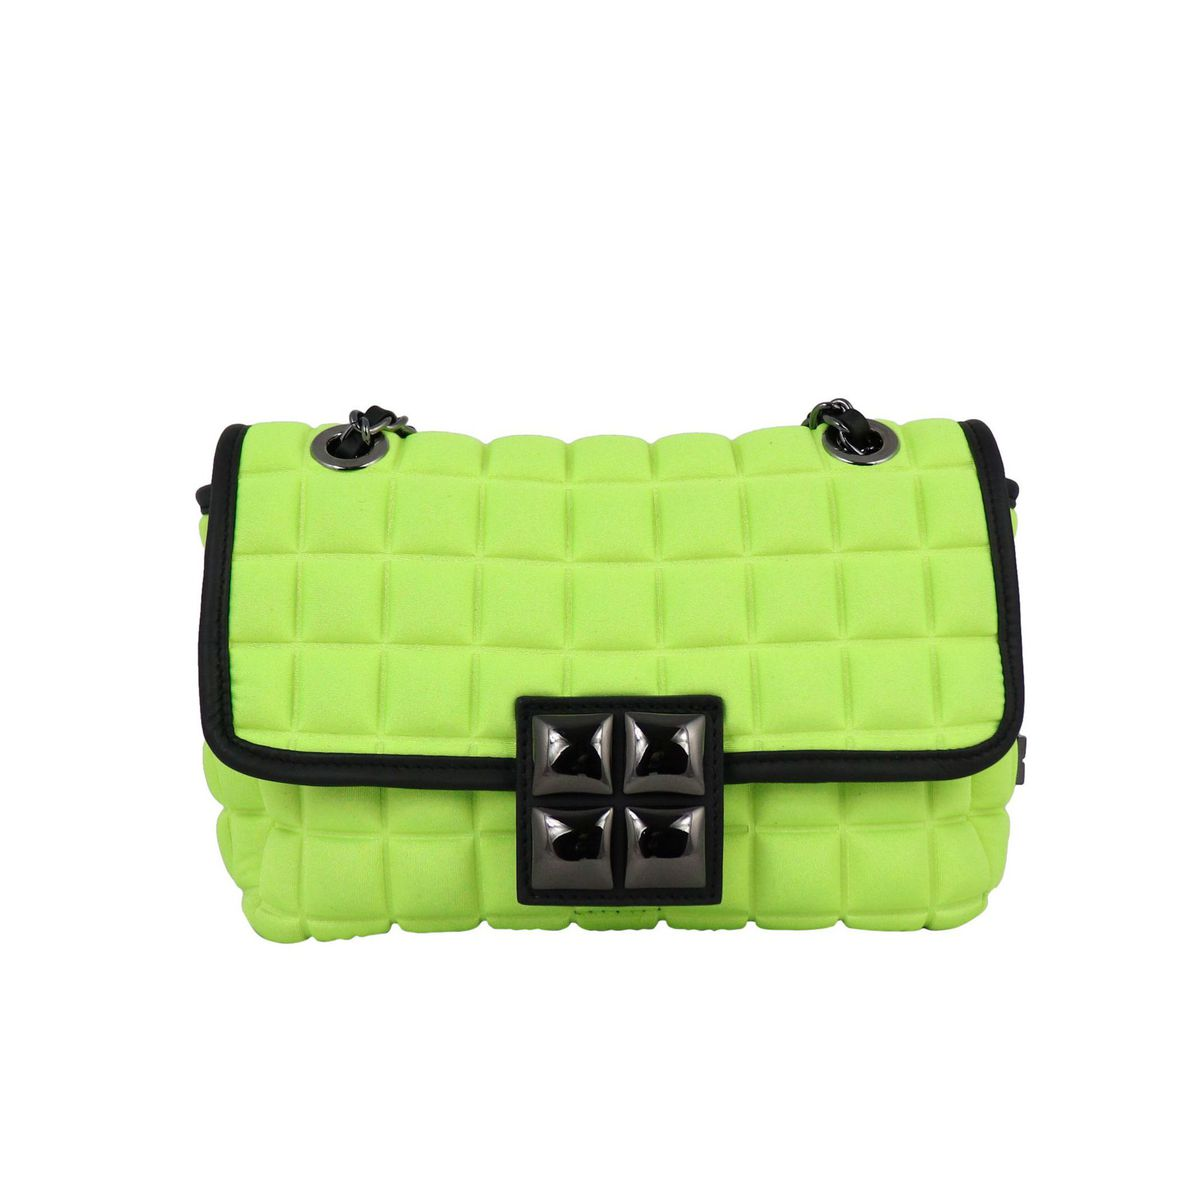 Small New Chain bag Fluo yellow BPRIME